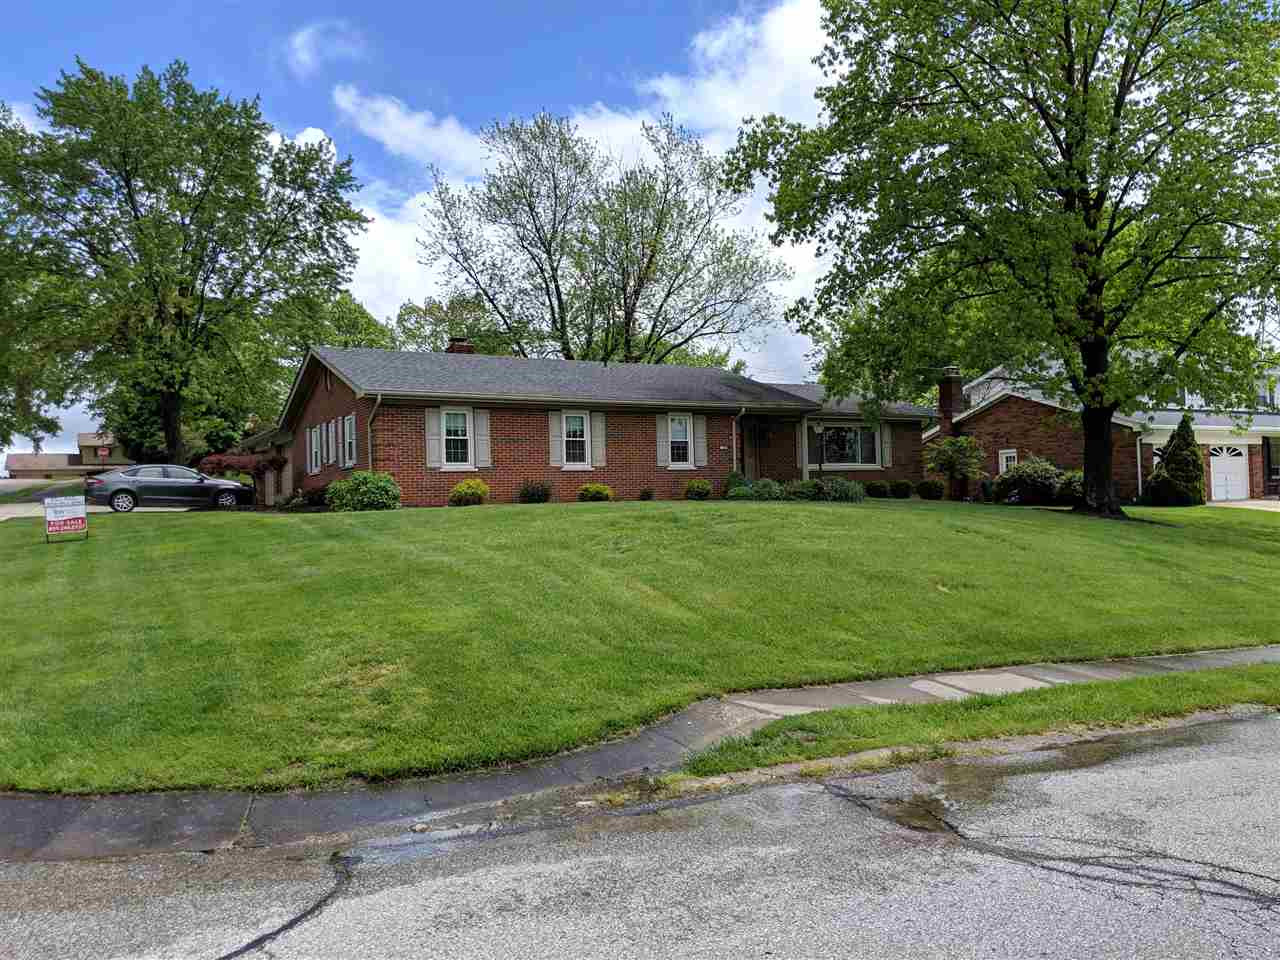 Photo 2 for 754 Robin Ln Villa Hills, KY 41017